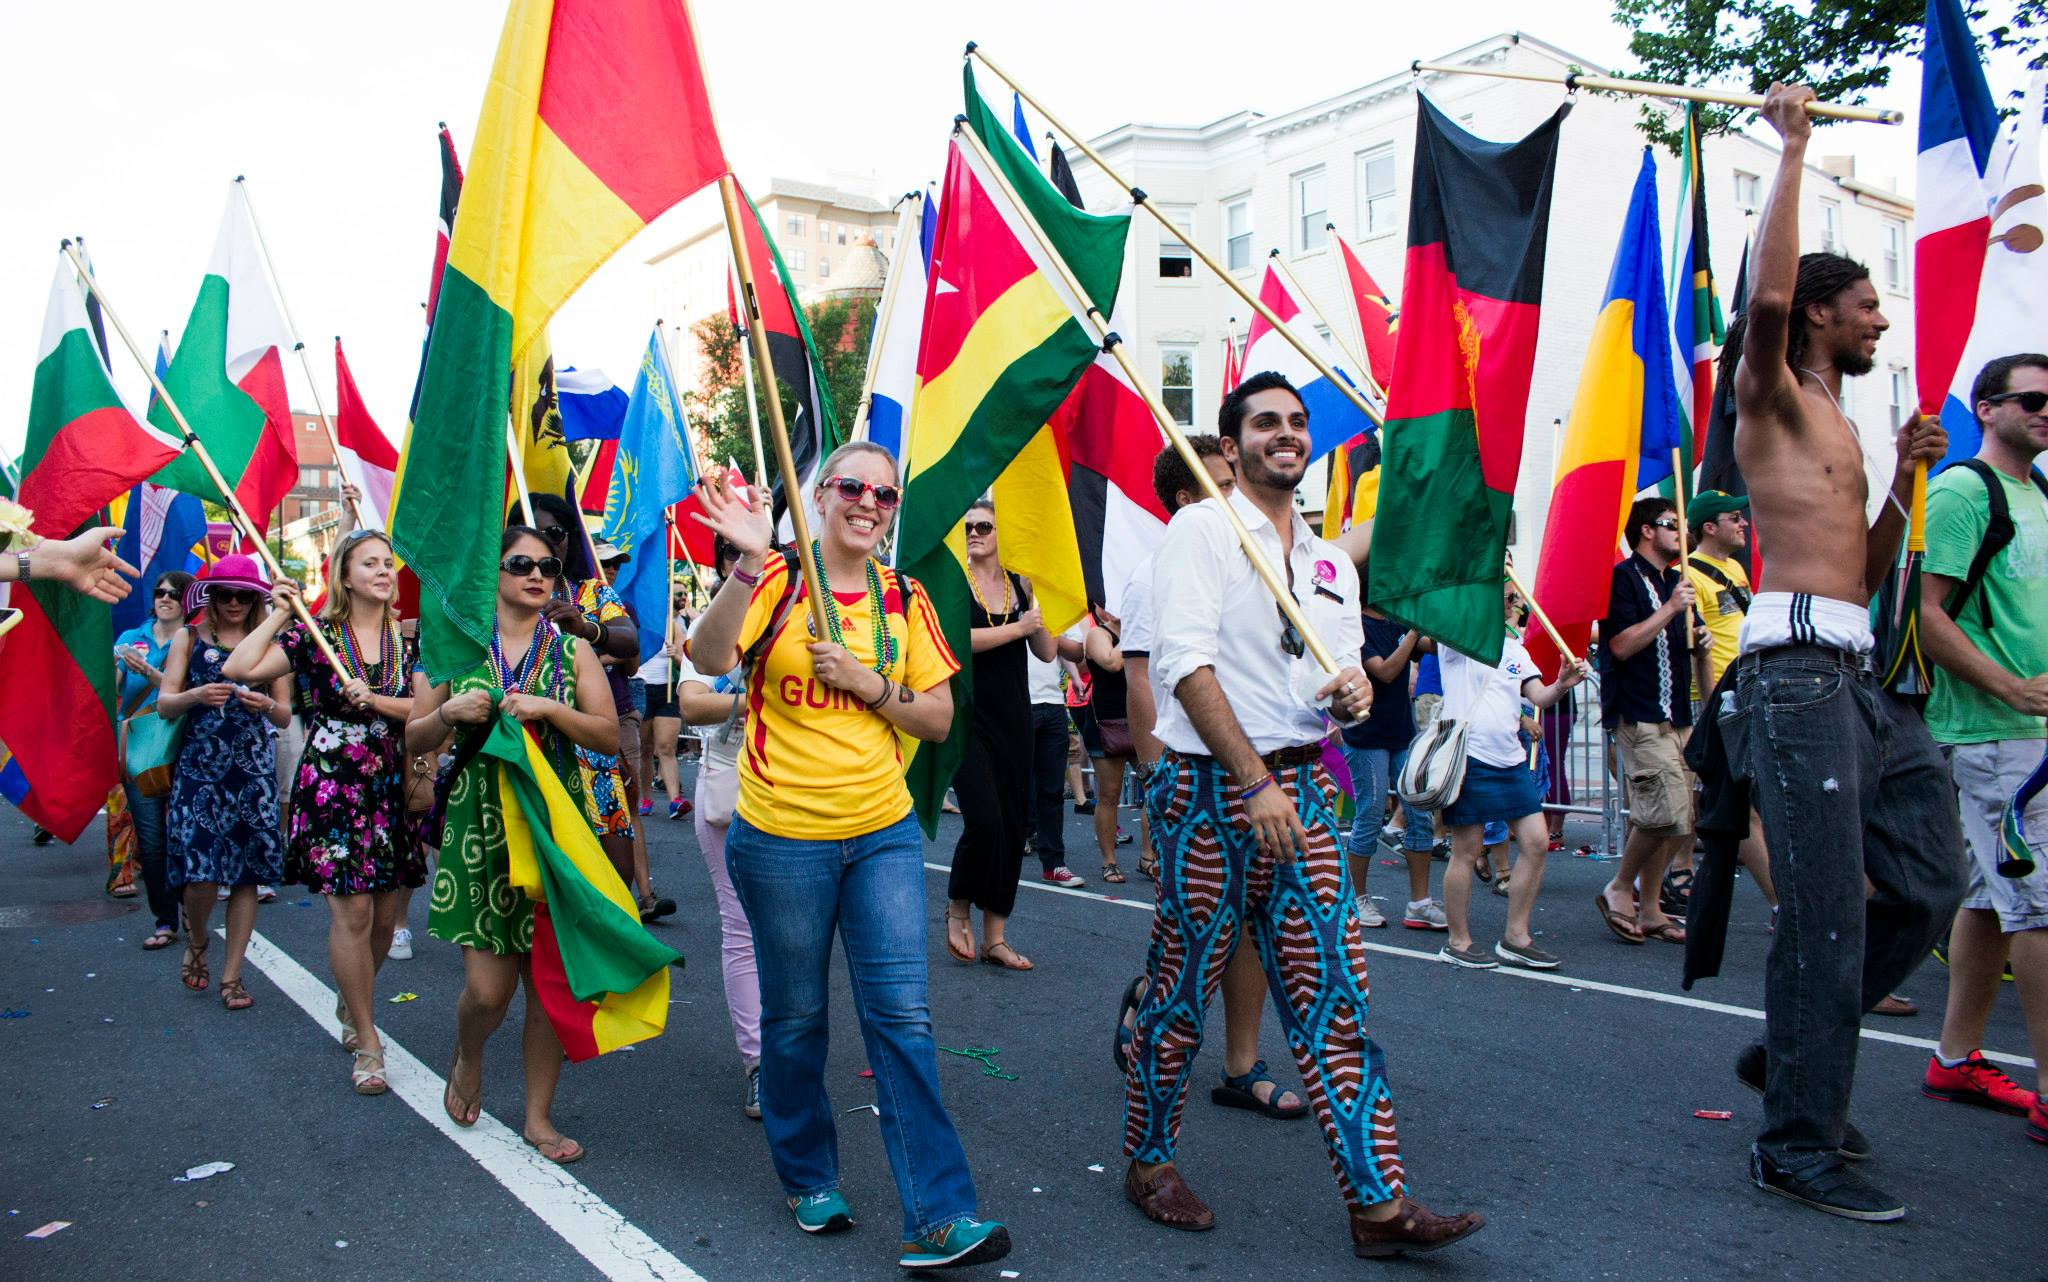 https://d3n8a8pro7vhmx.cloudfront.net/rpcvw/pages/670/meta_images/original/rpcvw_capital_pride_parade_1_2014.jpg?1462039229